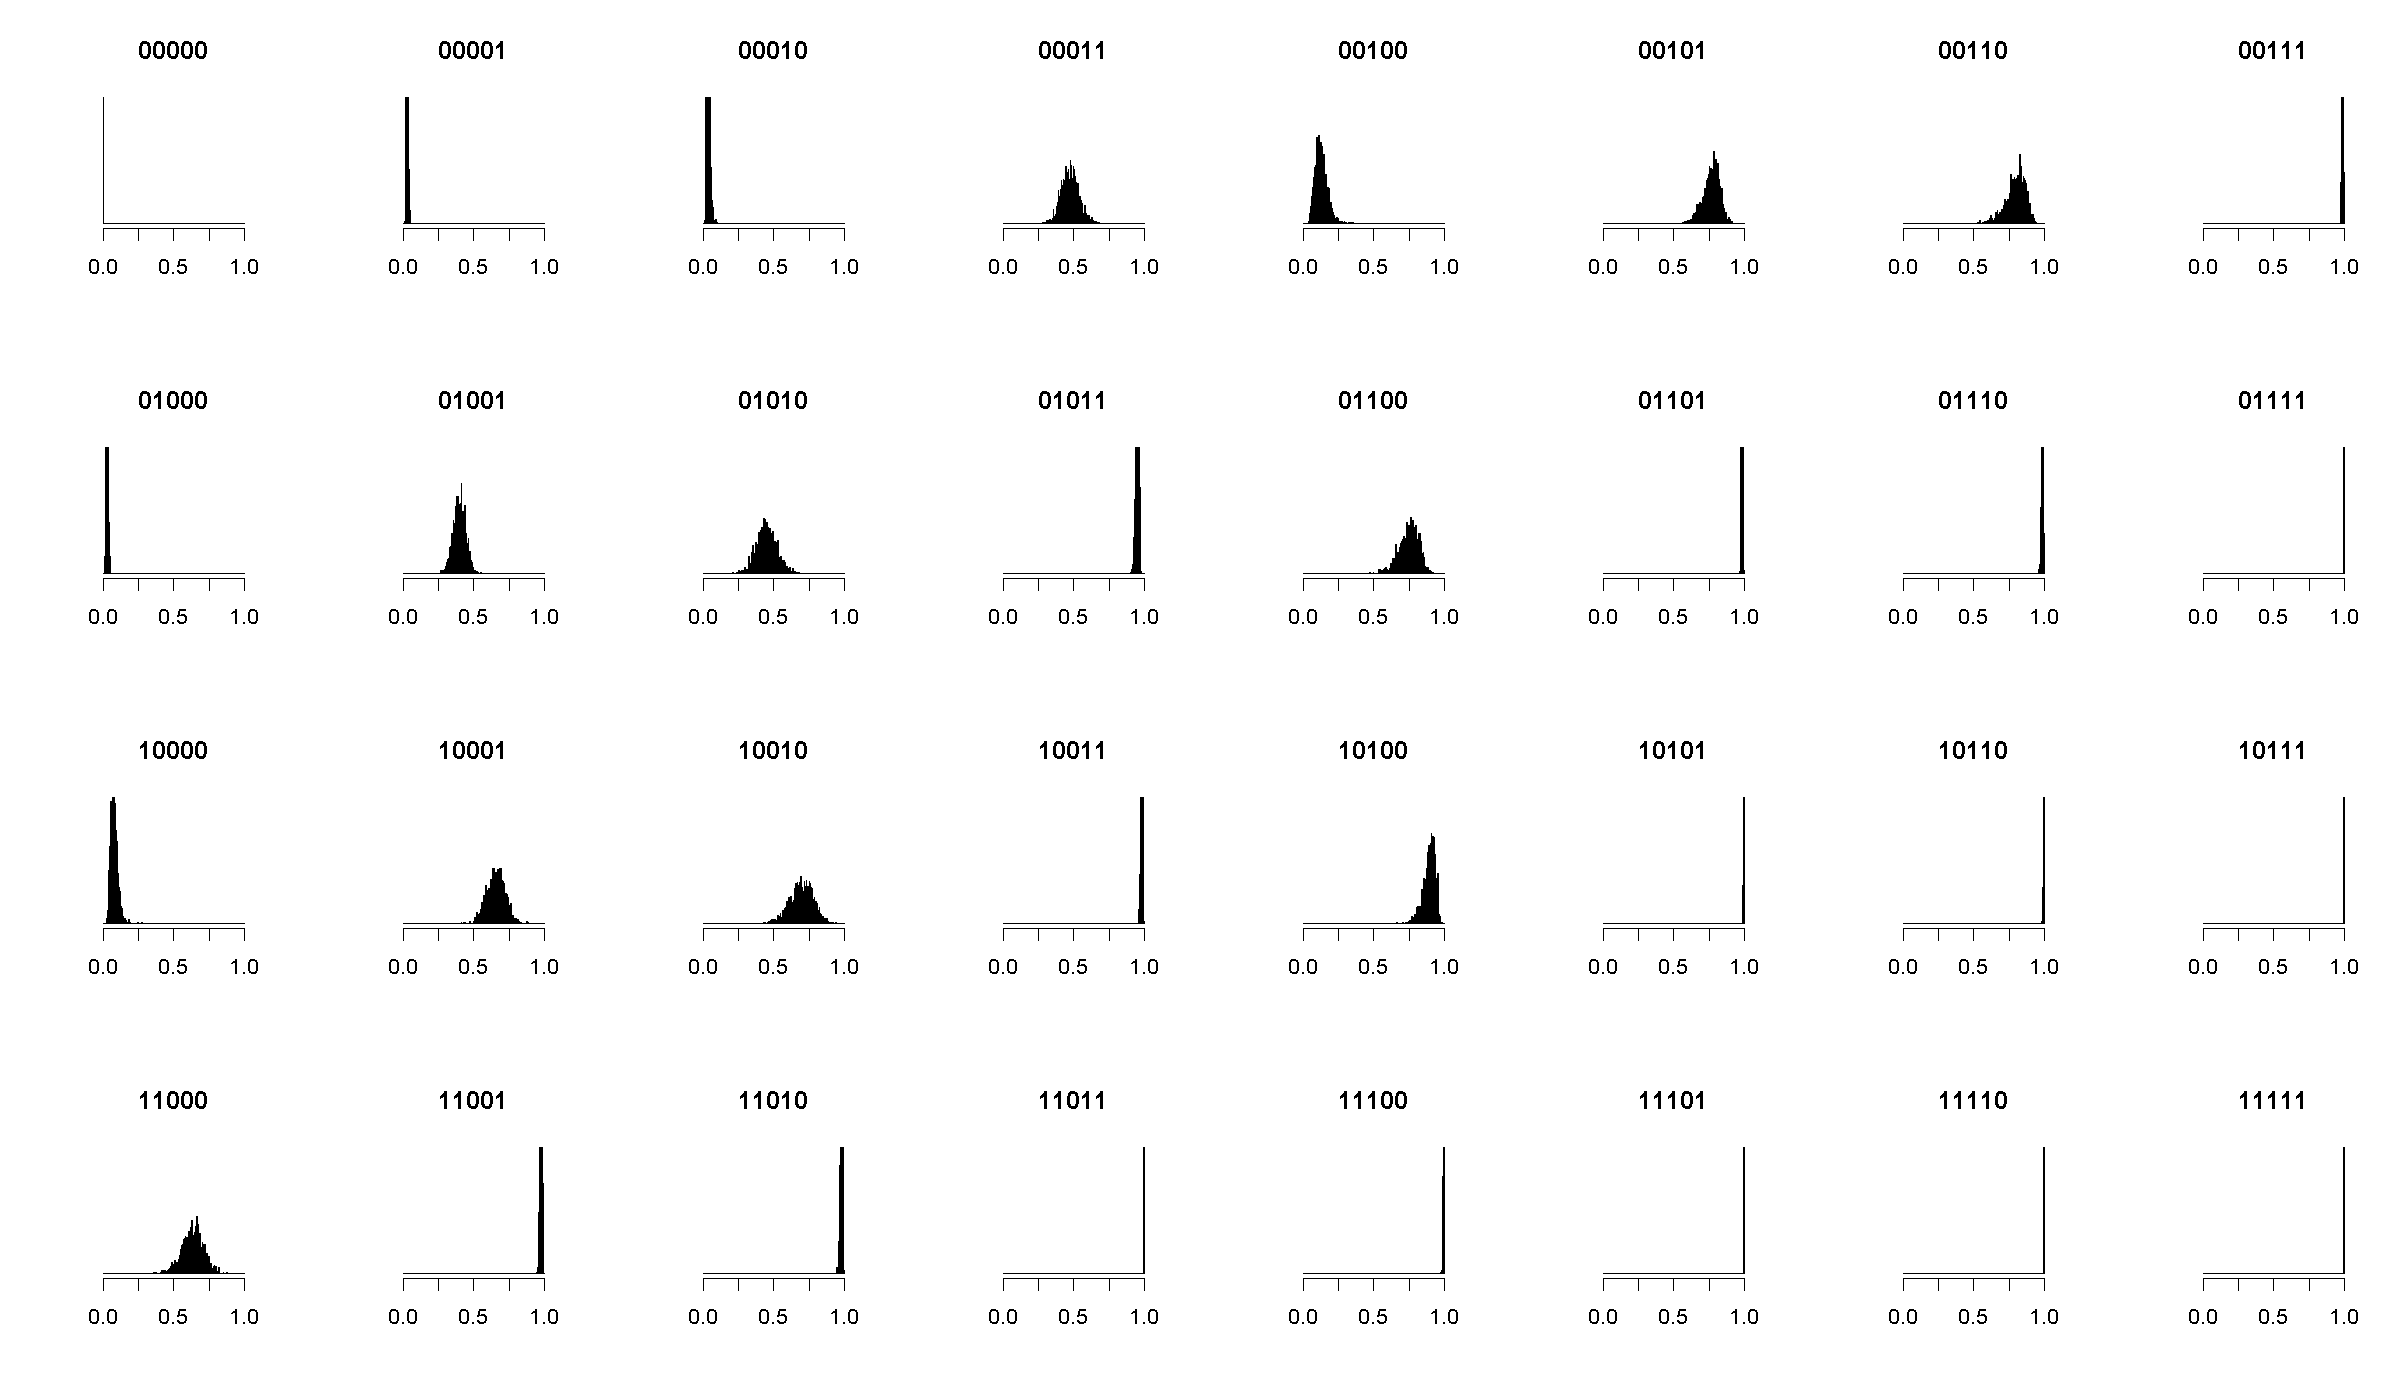 Posterior Category Densities on the Same Scale